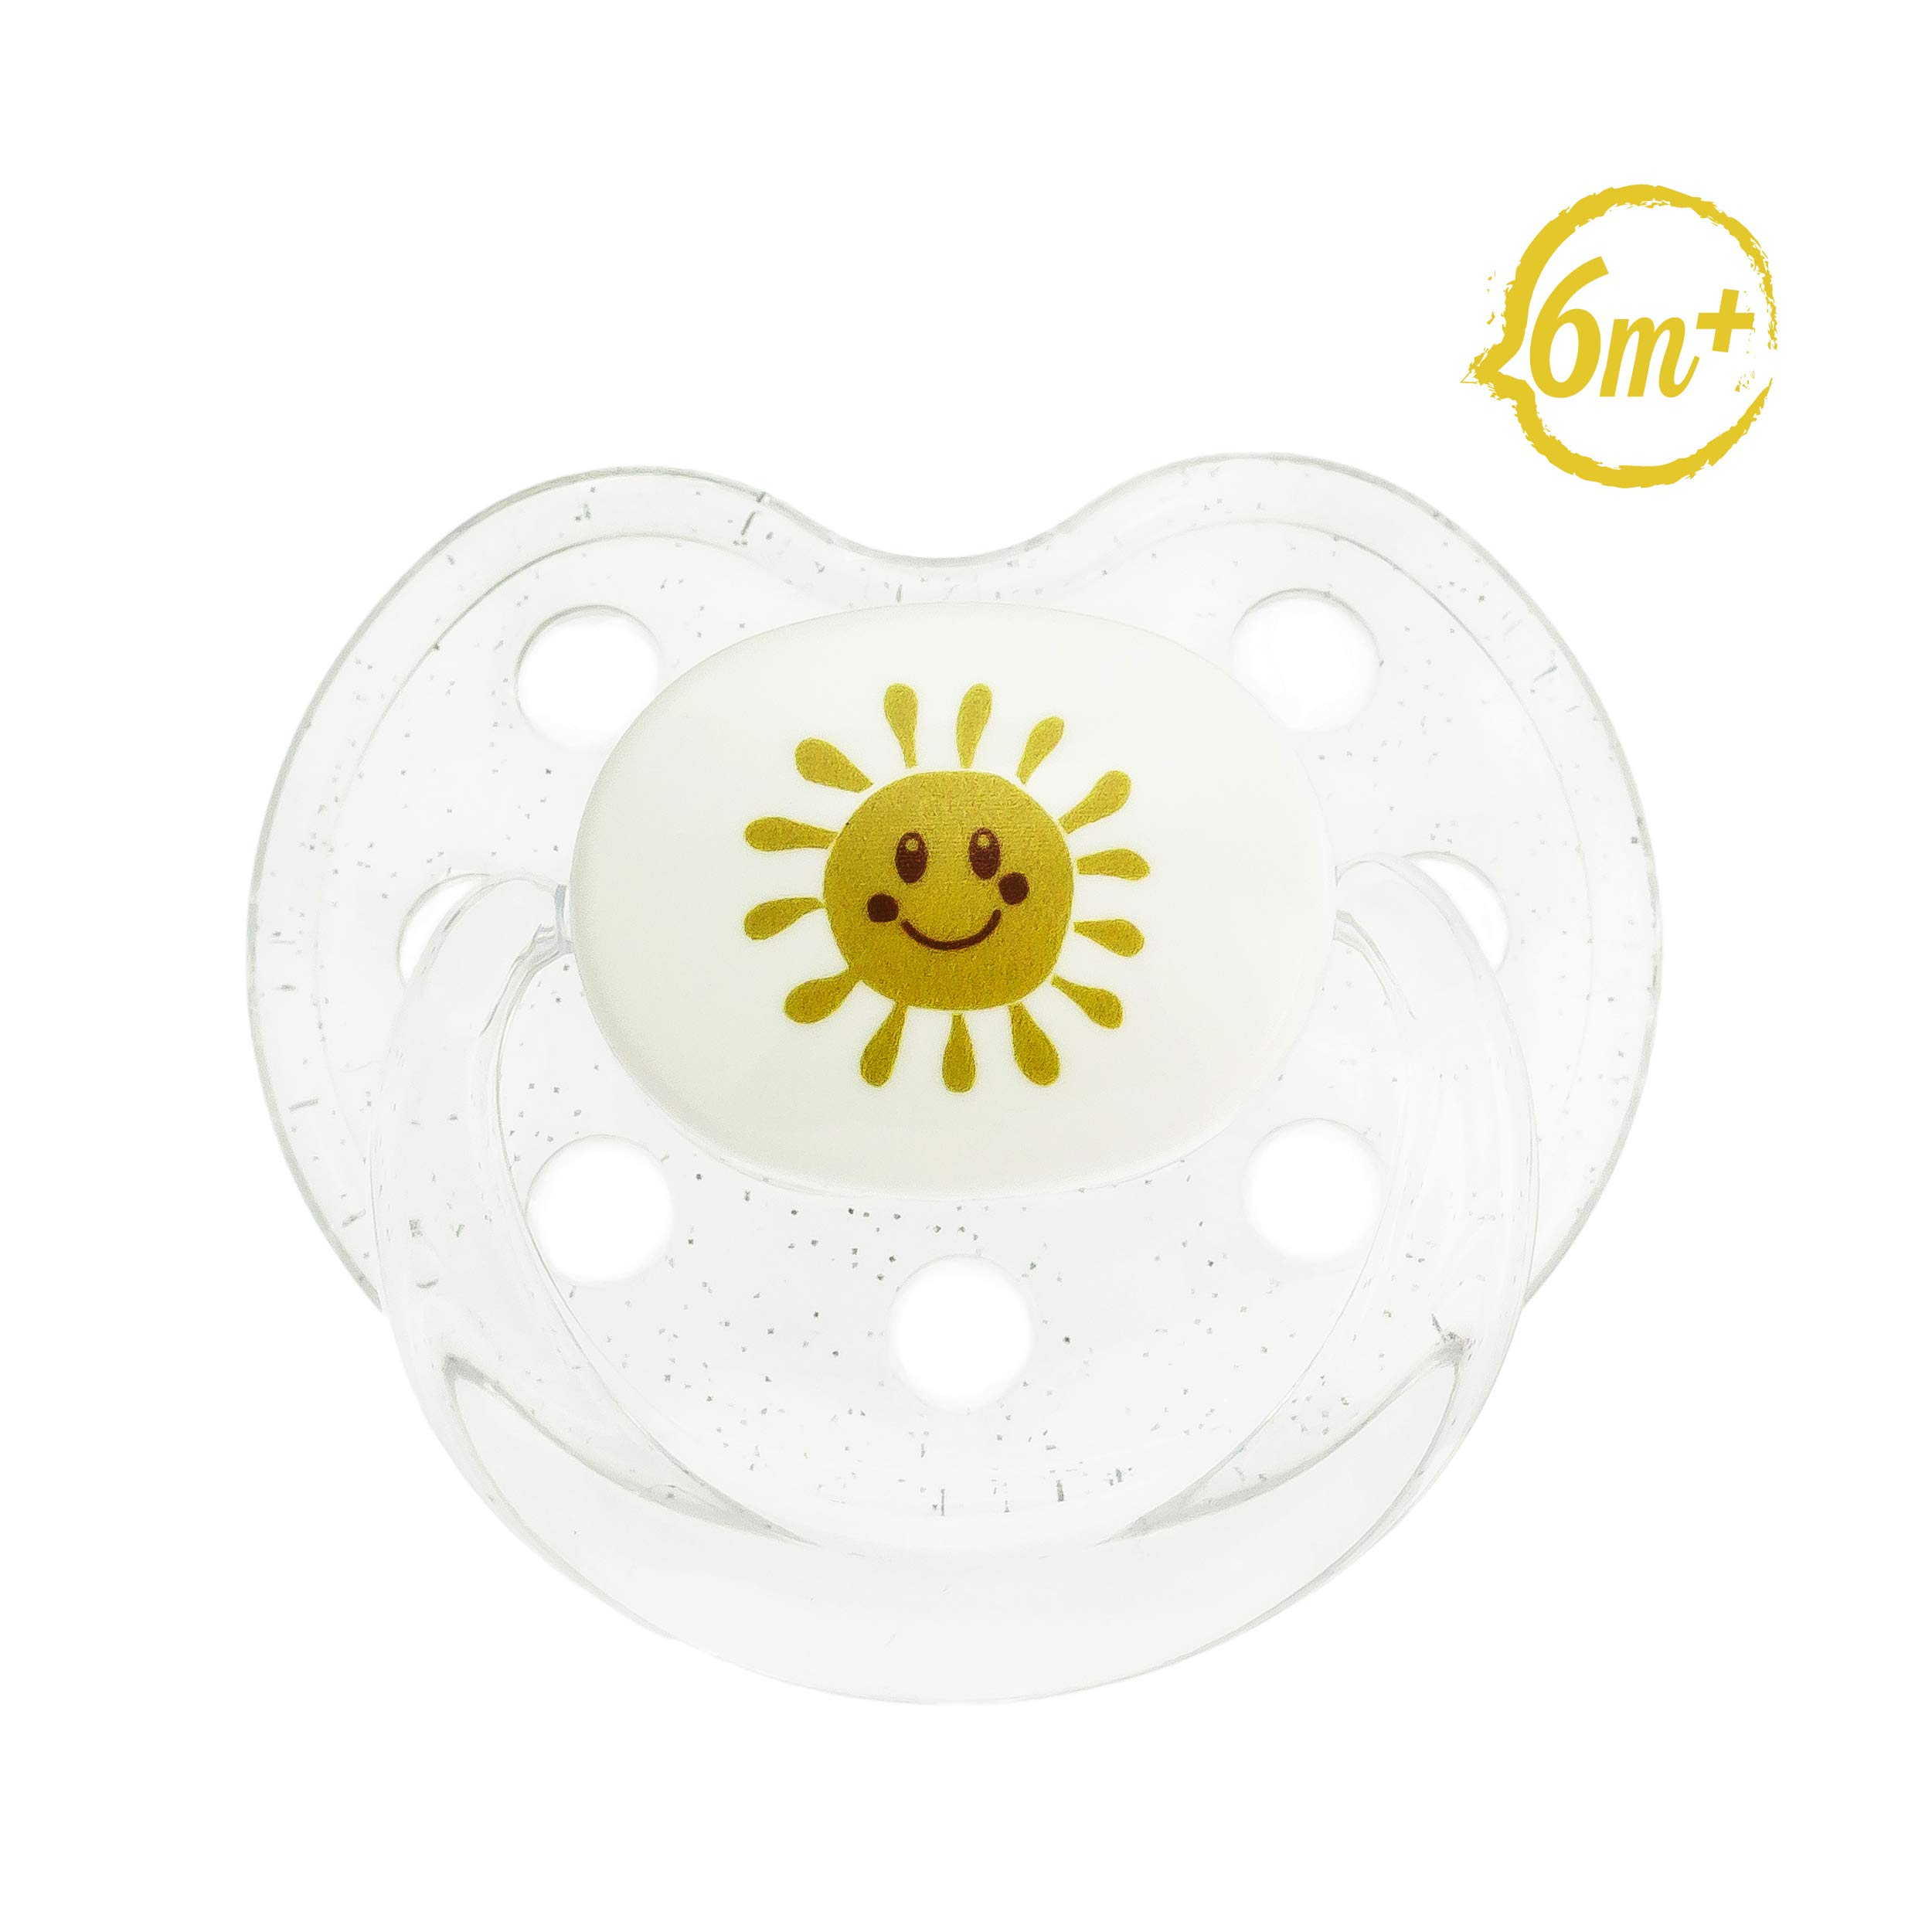 Le Biberon Baby Pacifier, 6-18 Months - Premium Soft Silicone Teat with Gum, Tongue and Palate Friendly Shape - Tritan Material - BPA Free - Sun Theme - Matches Le Biberon Baby Bottle Gift Sets